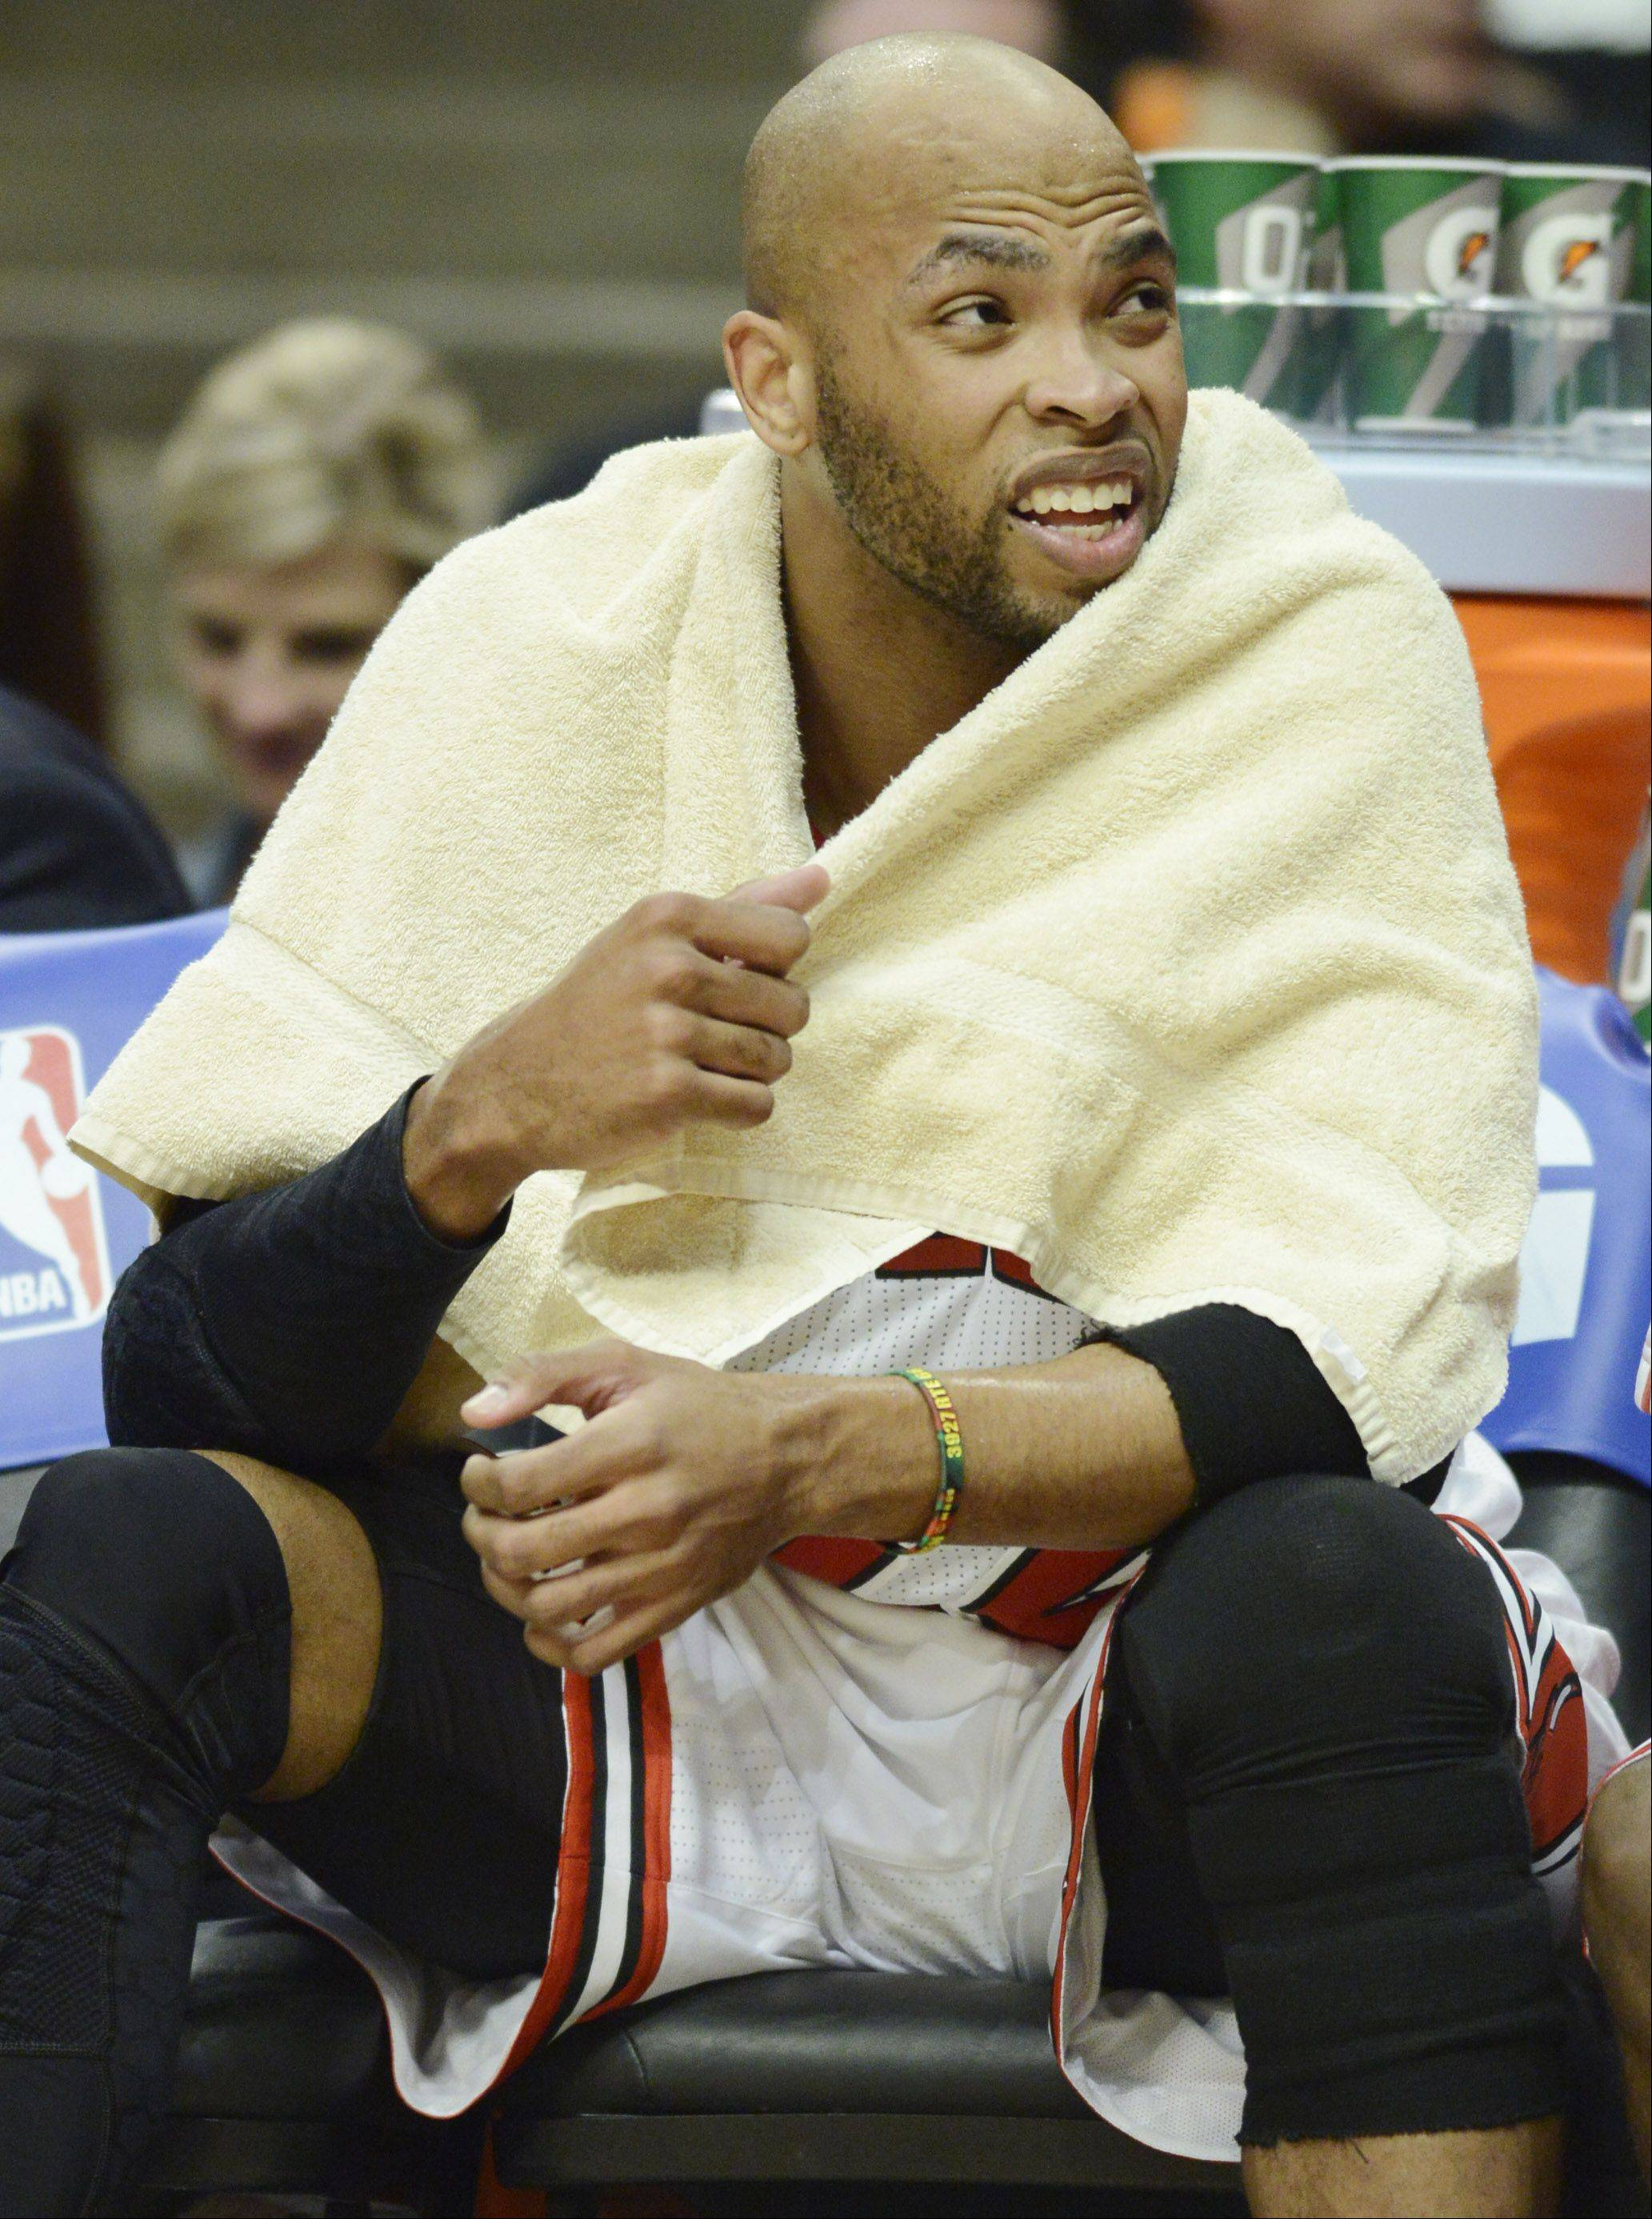 Taj Gibson of the Chicago Bulls sits on the bench after drawing his sixth foul in Game 6 of the first round playoff game against the Brooklyn Nets at the United Center in Chicago, Thursday, May 2, 2013.